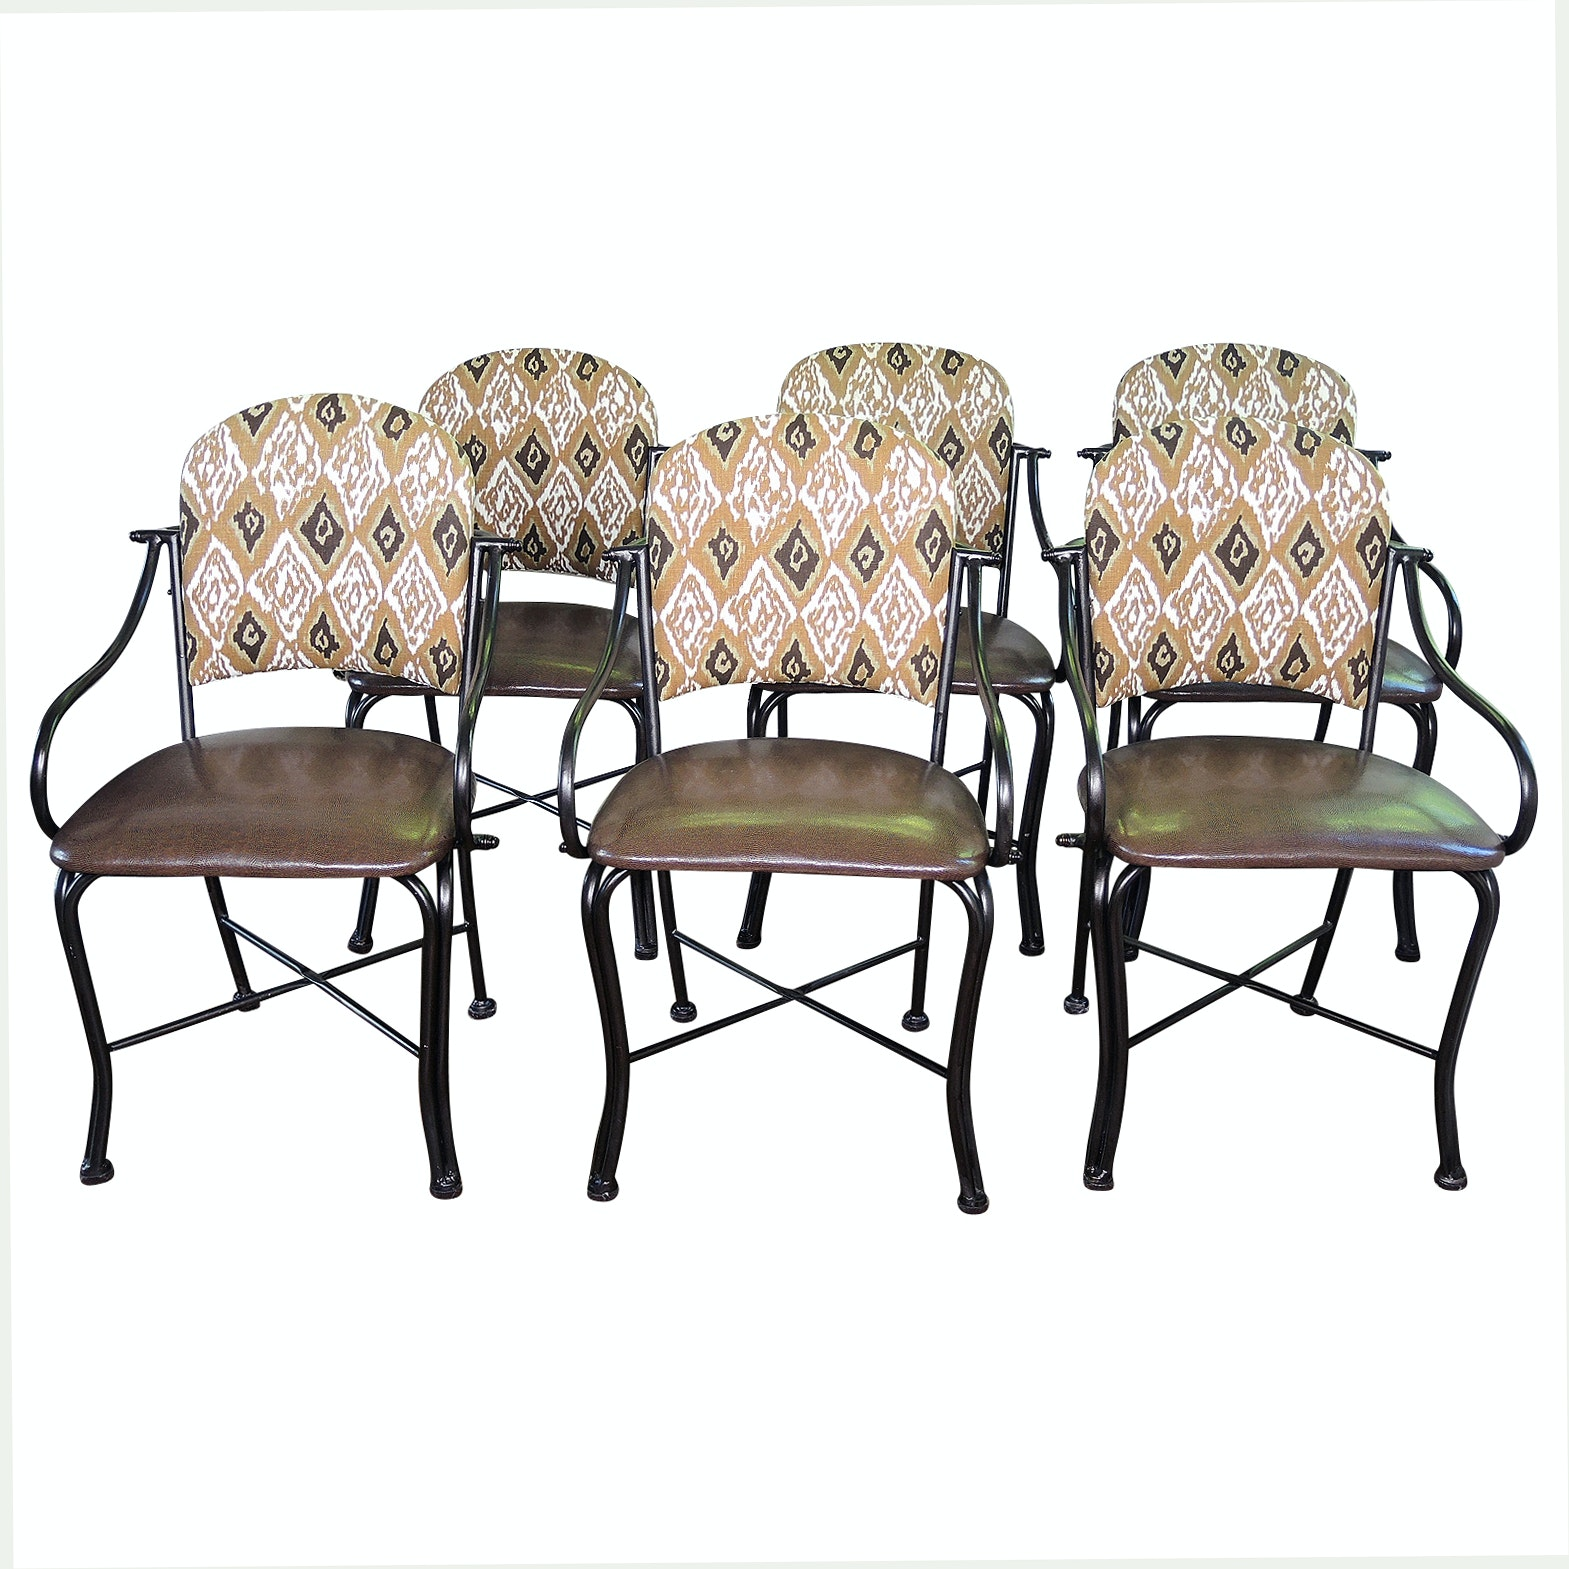 Six Contemporary Metal Framed Upholstered Dining Chairs